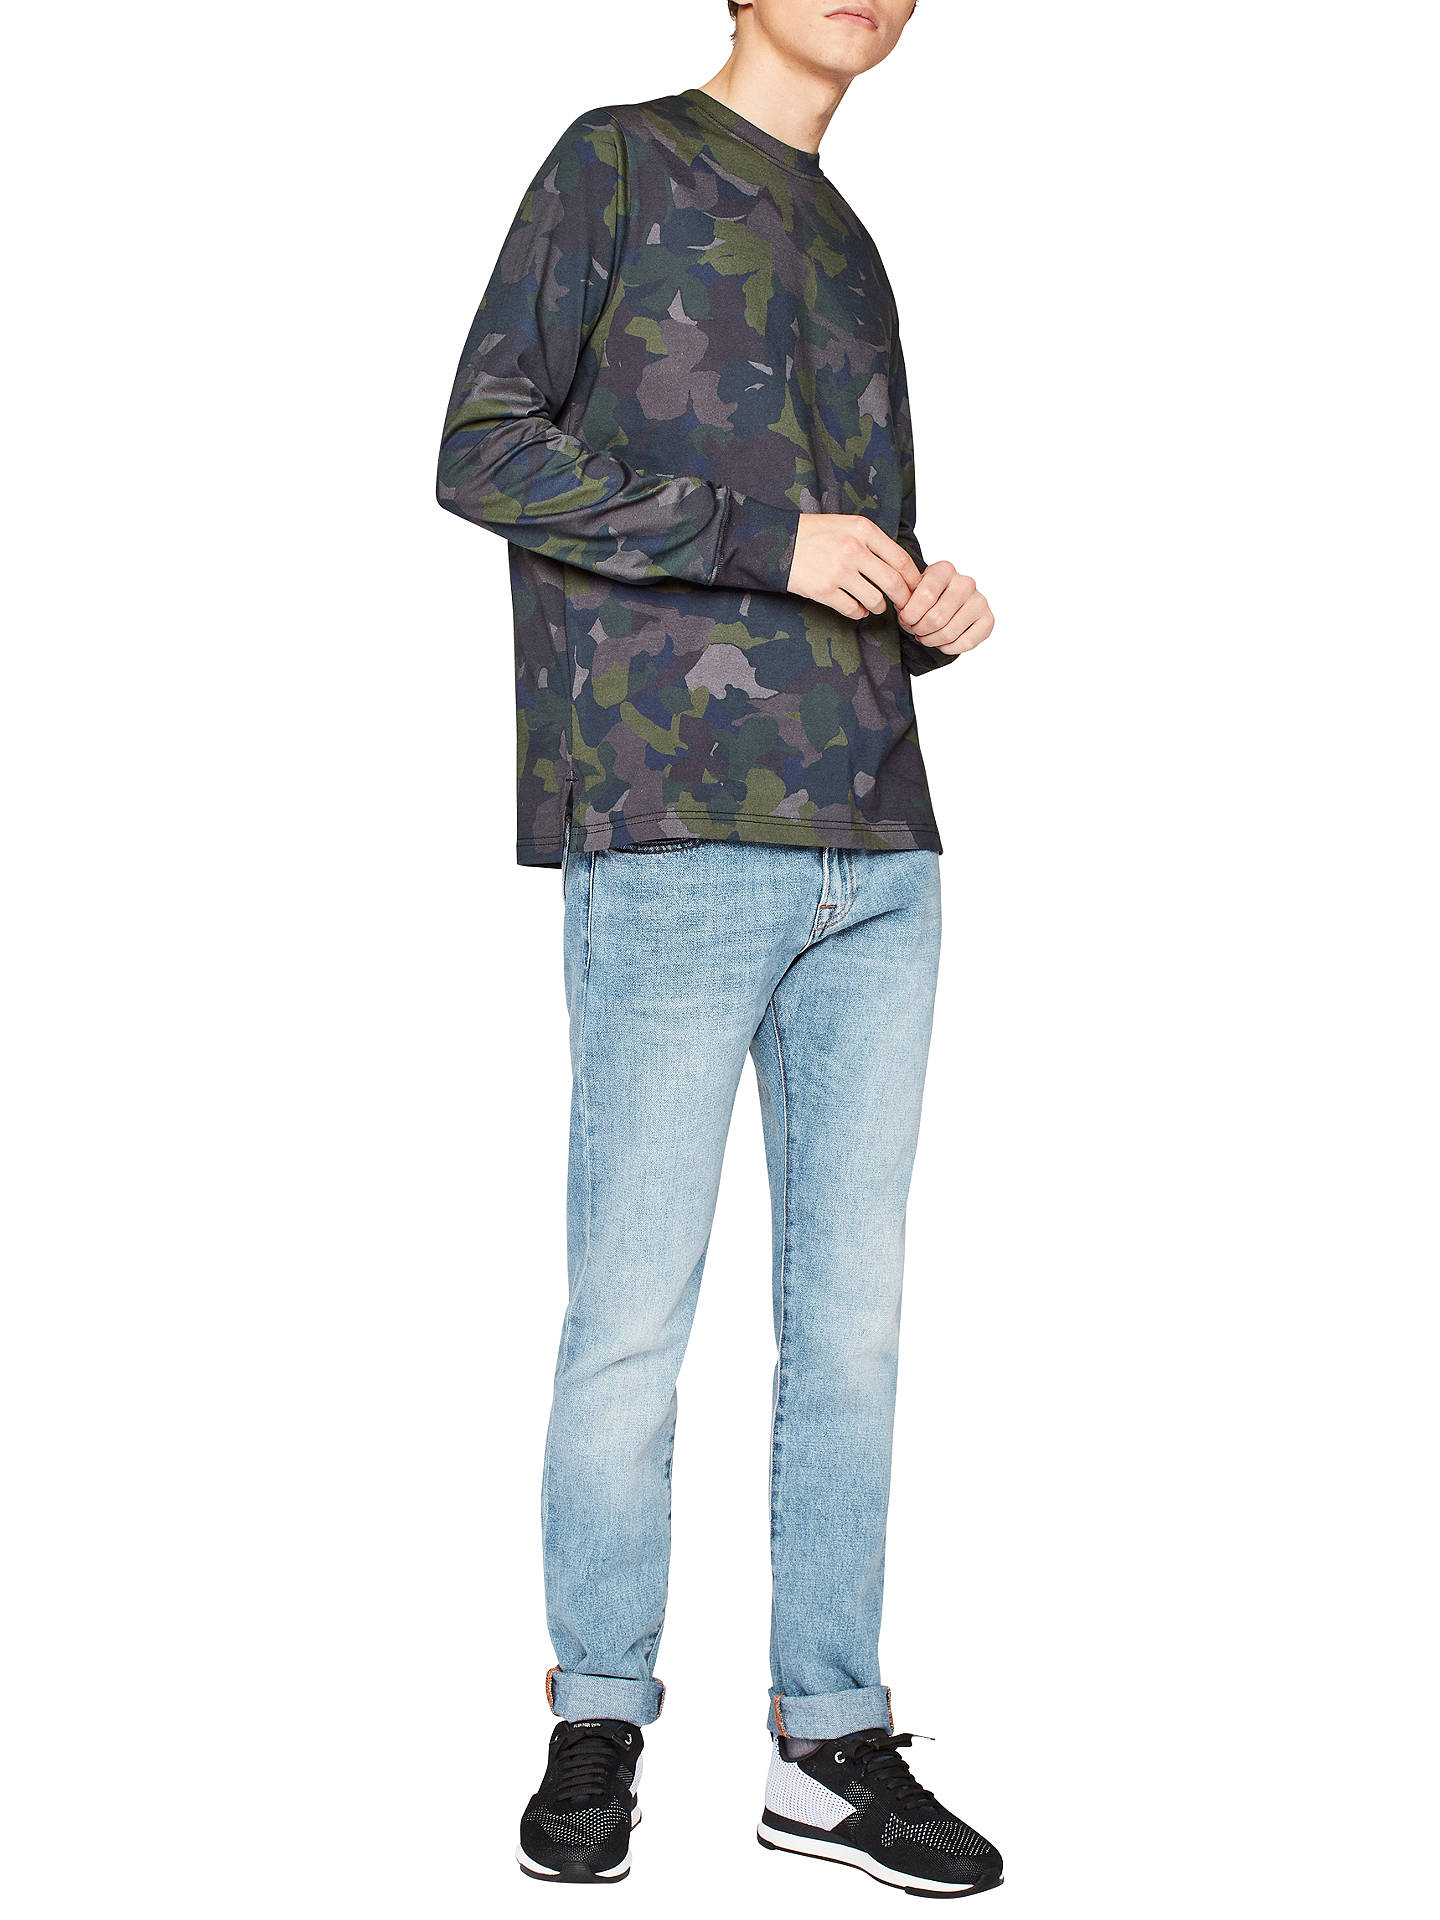 Ps Paul Smith Camo Print Long Sleeve T Shirt Dark Navy At John Tendencies Tshirt Monday To Xxl Buyps S Online